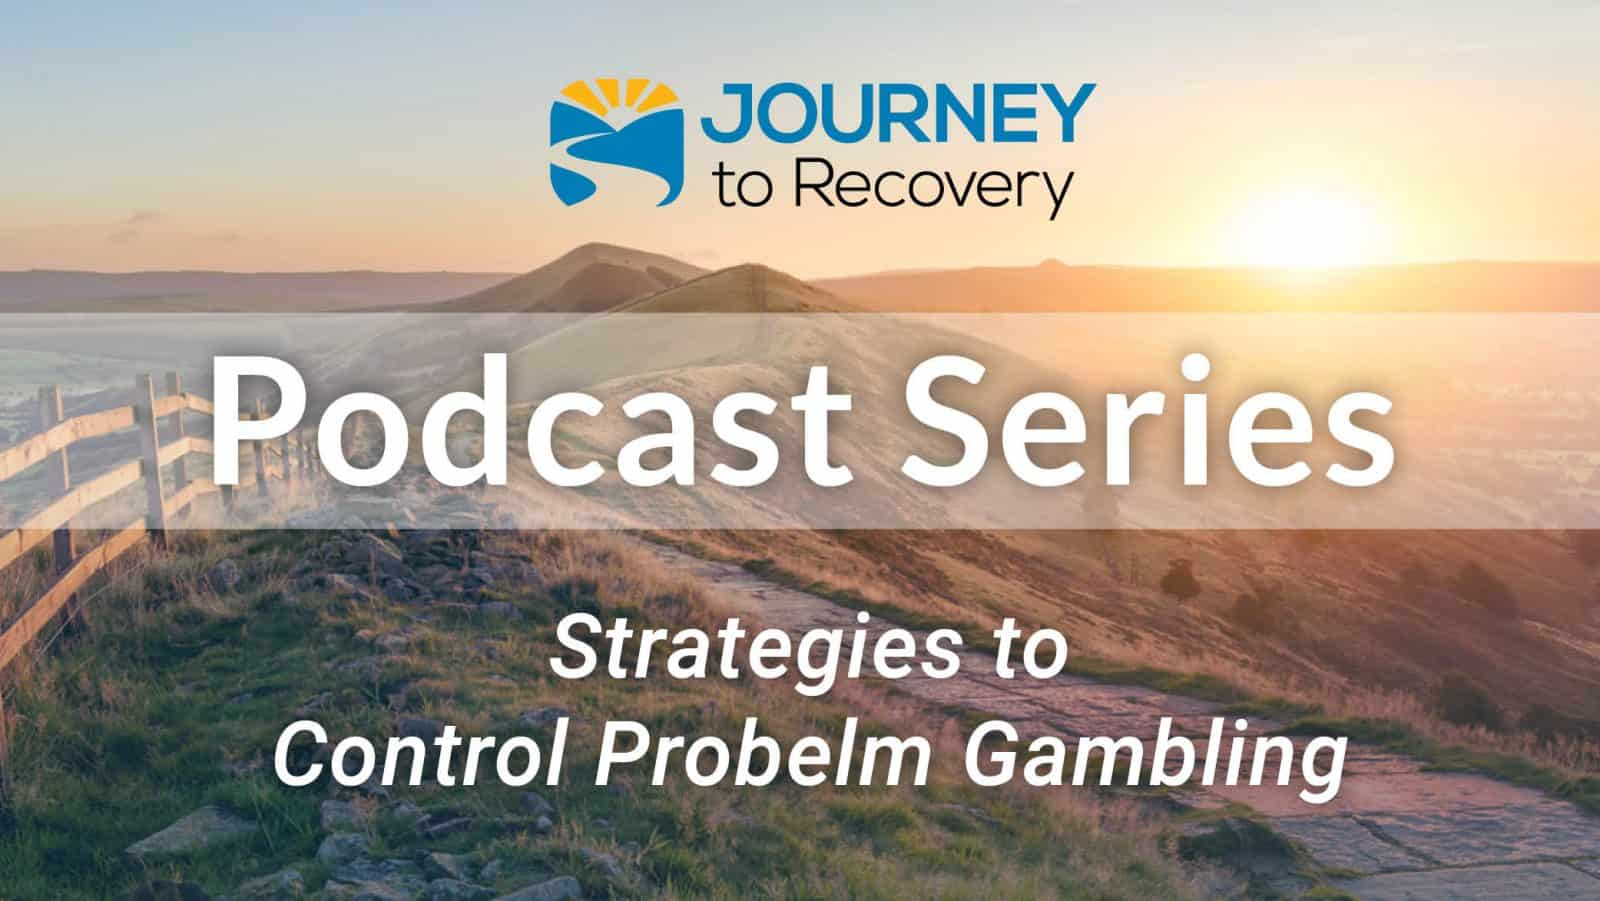 Strategies to Control Problem Gambling